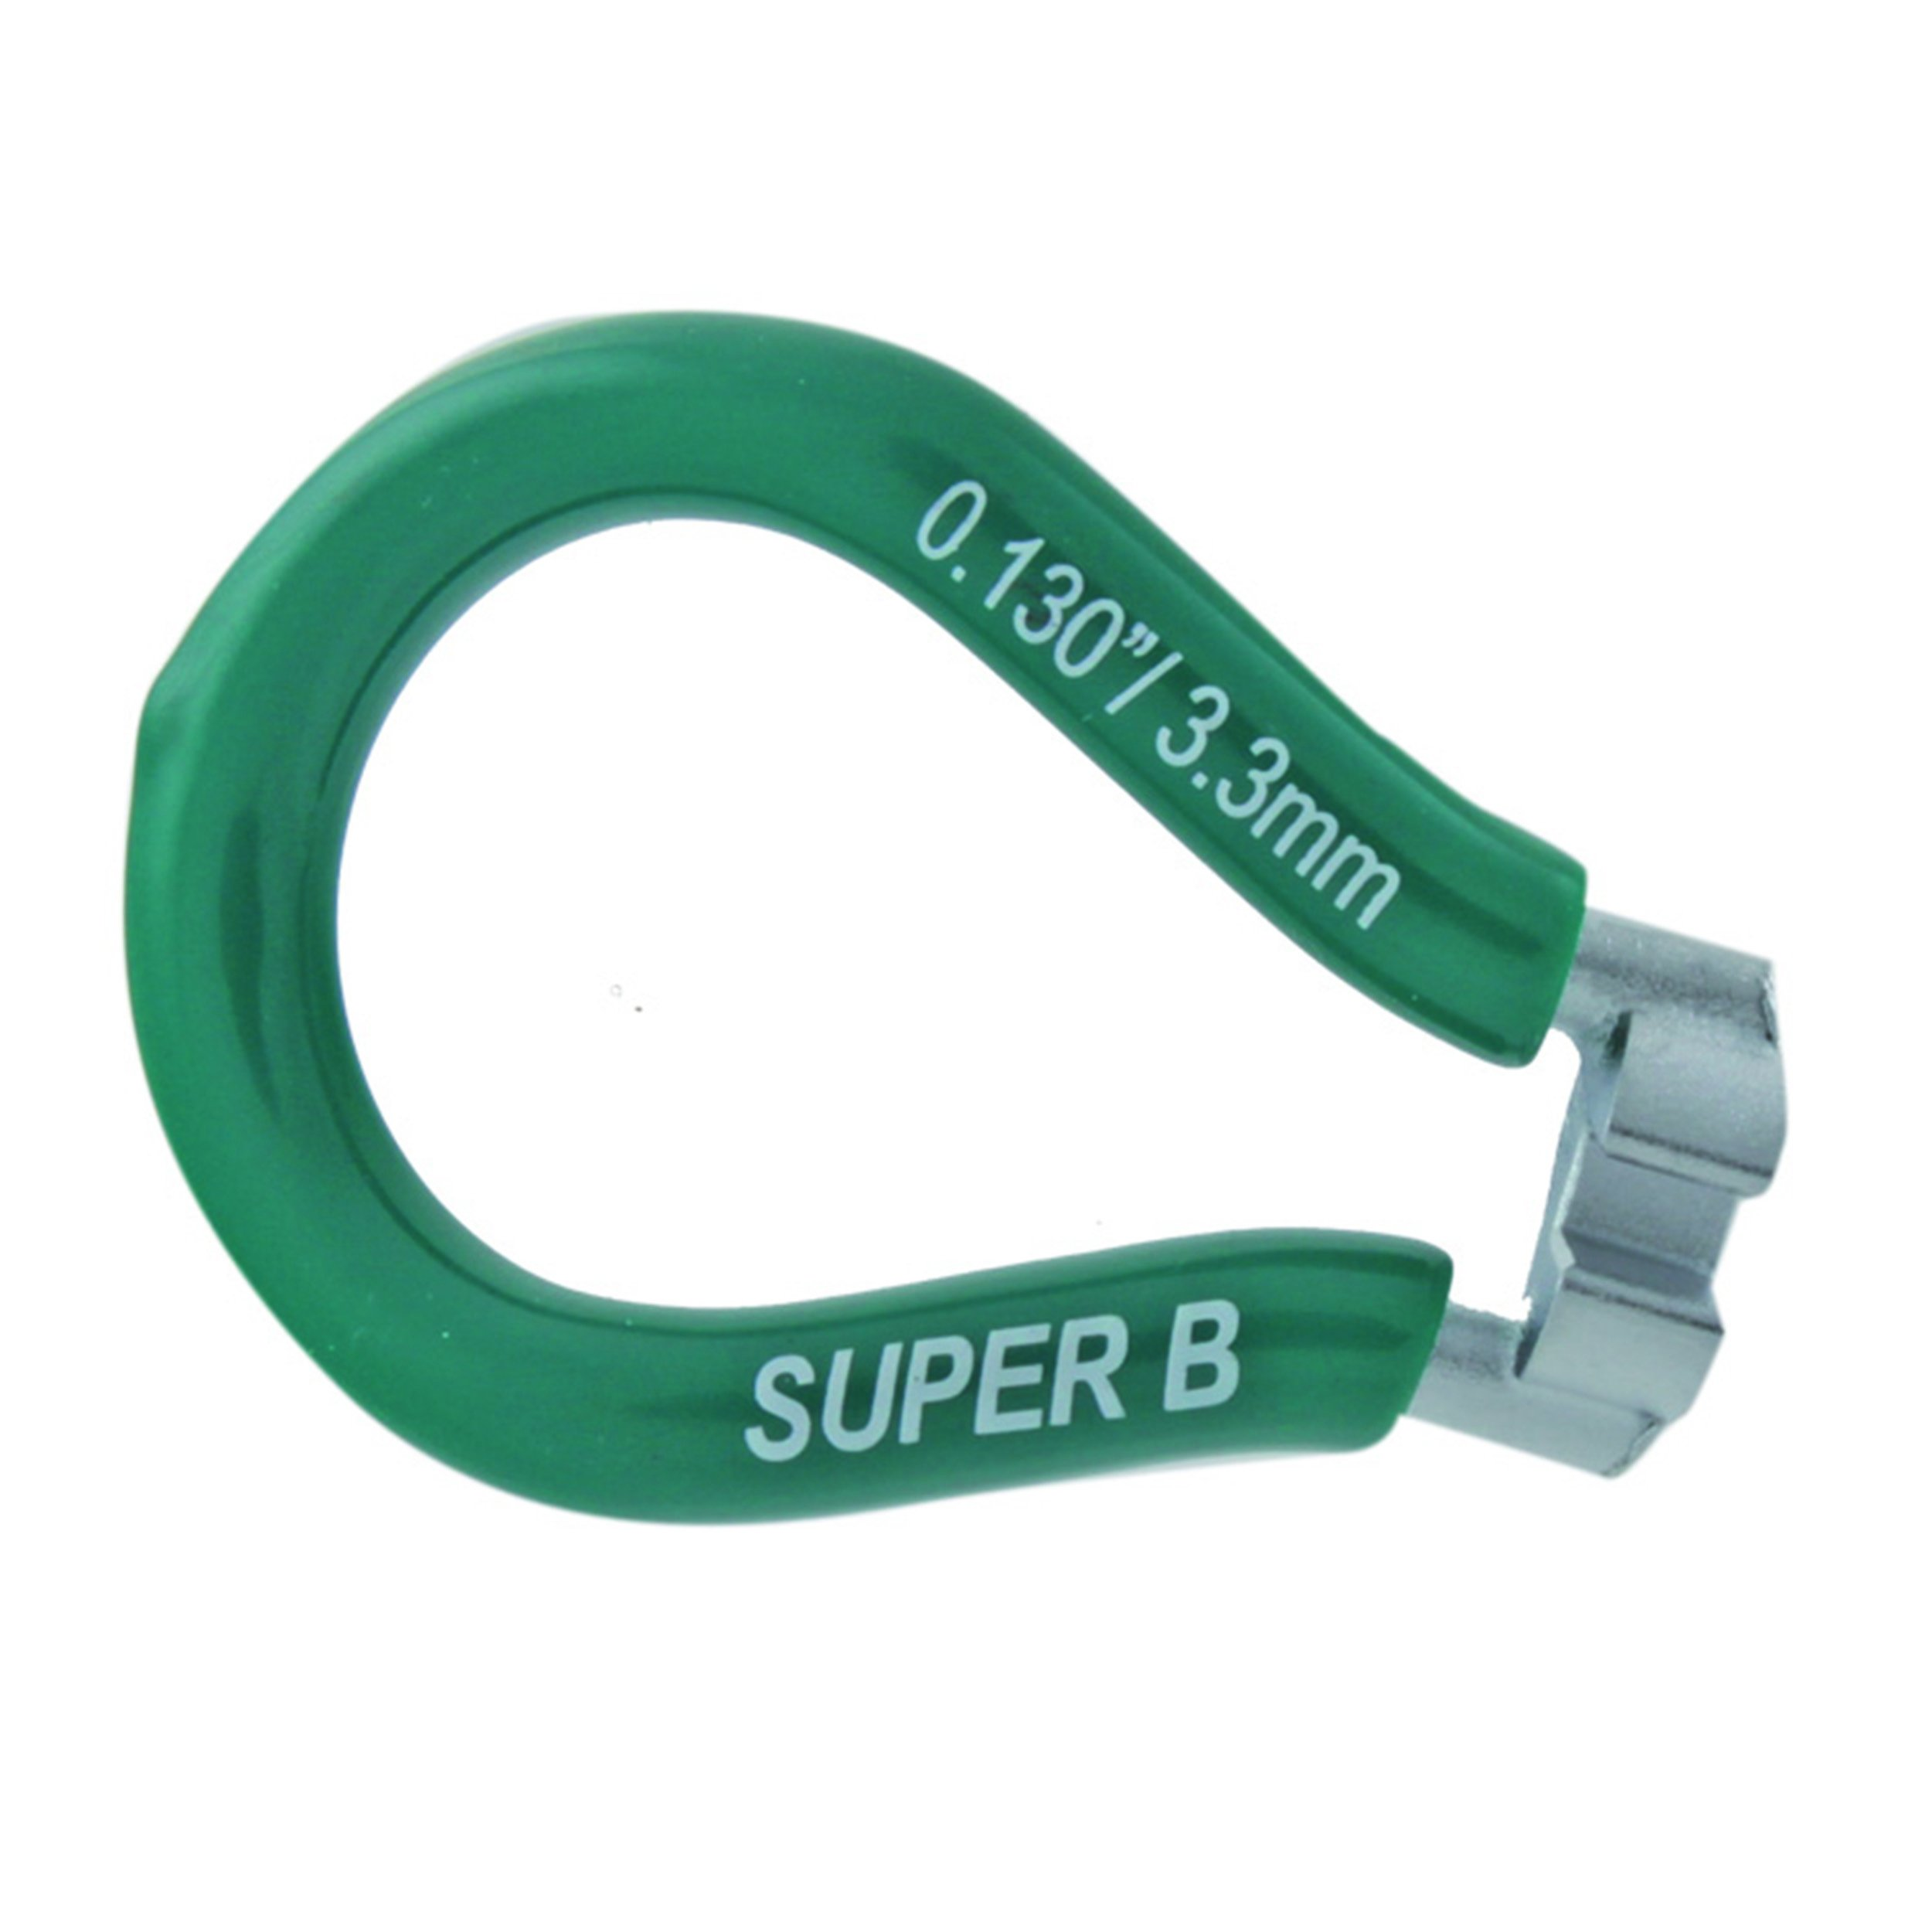 Super B 3.3 mm Spoke Wrench